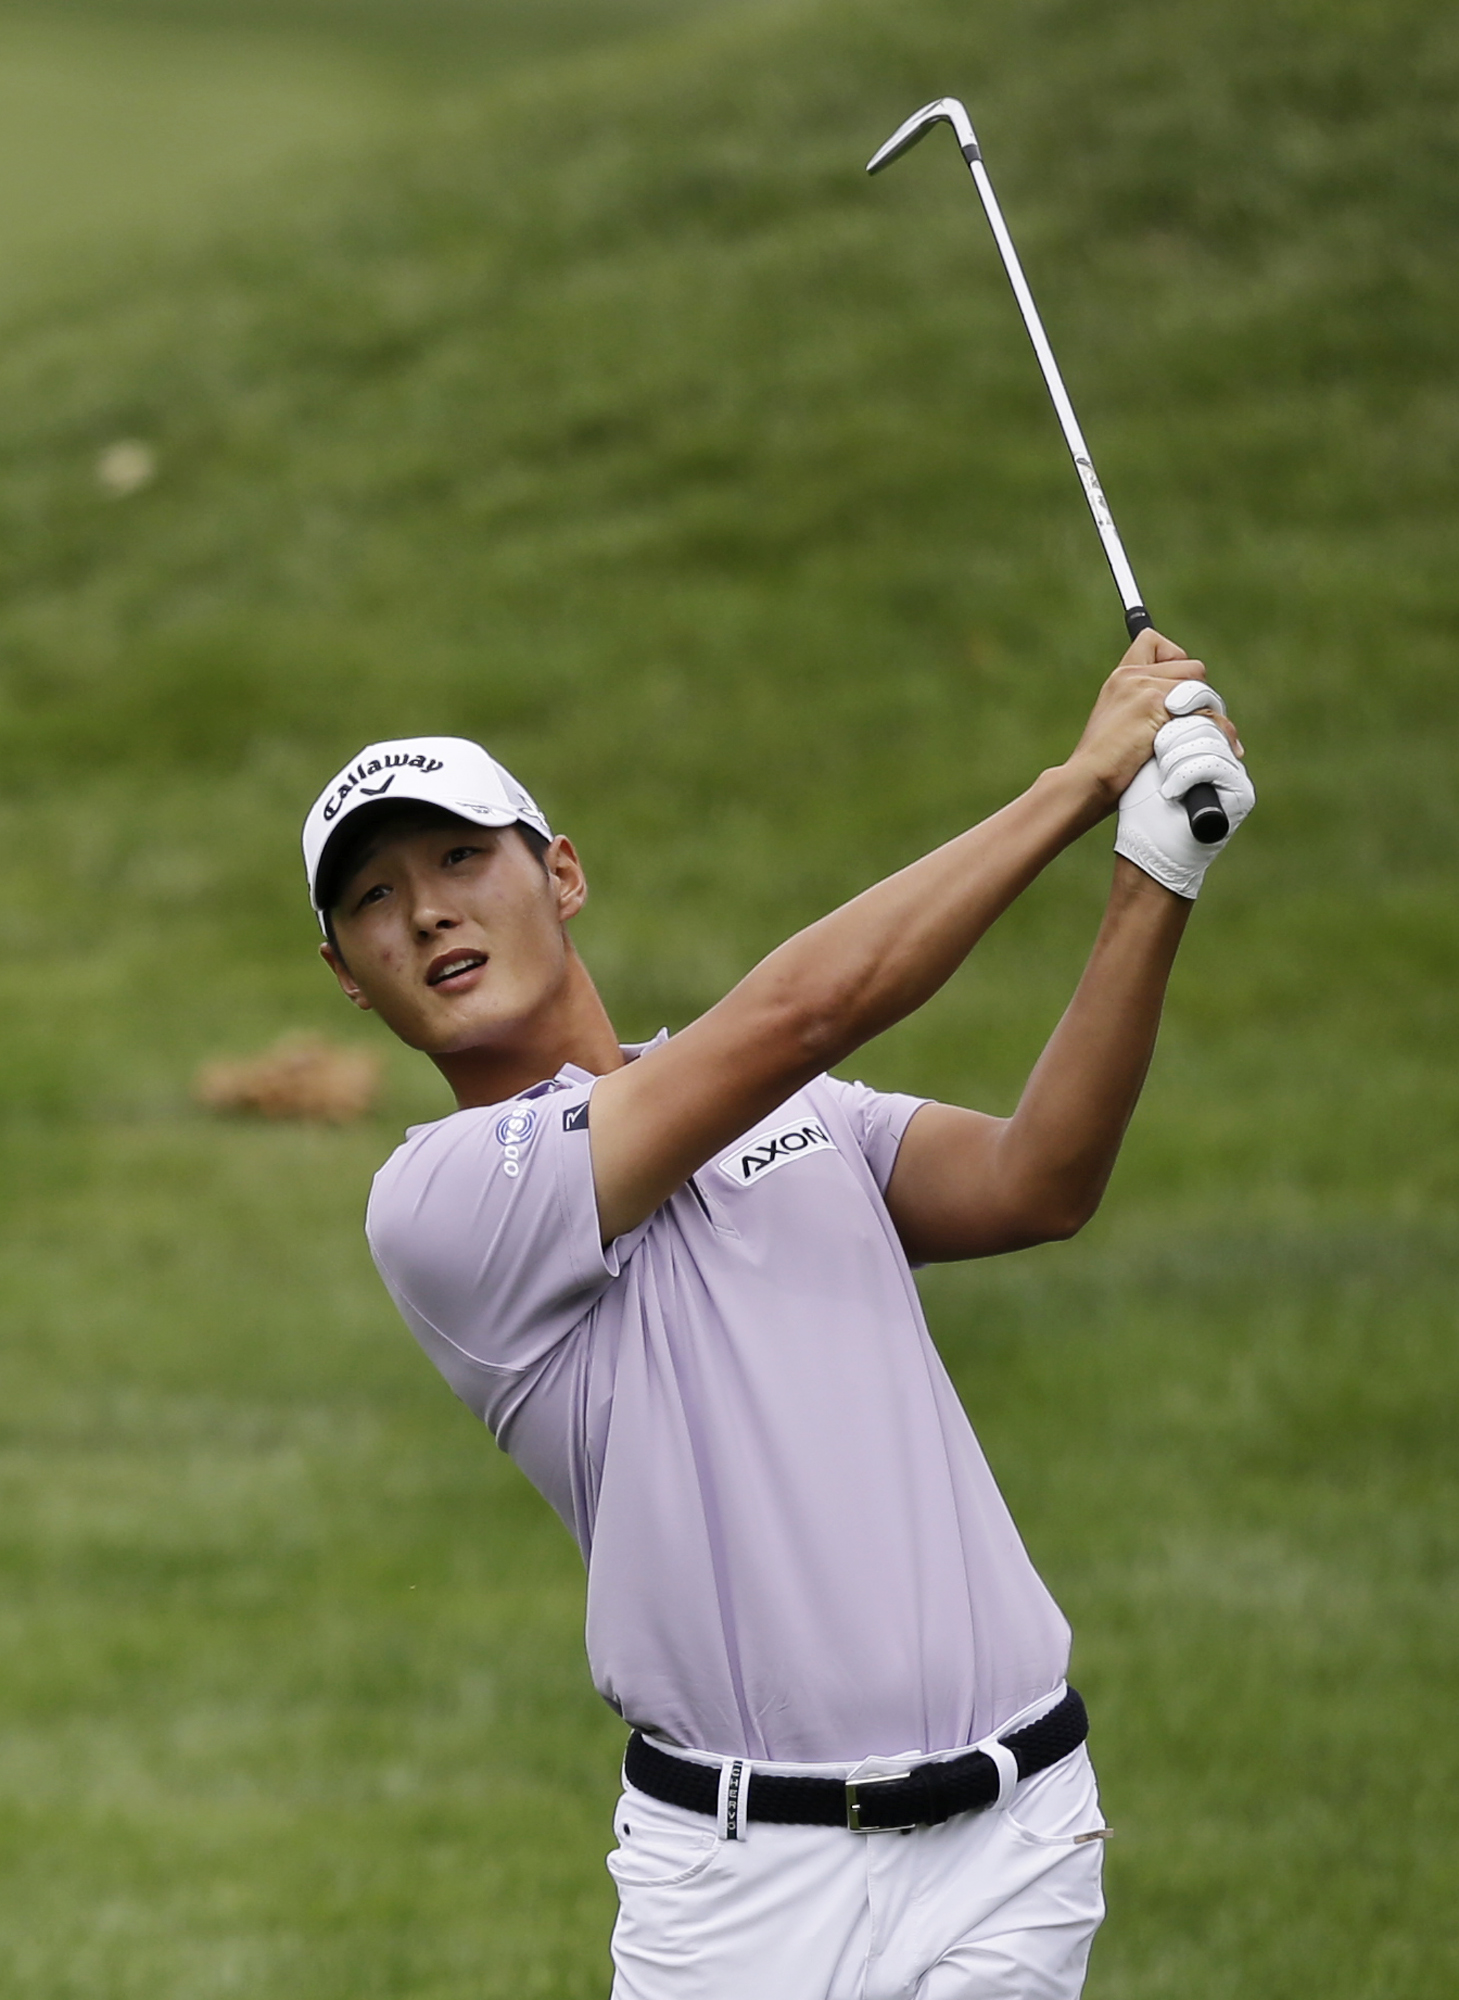 Danny Lee, from New Zealand, hits from the fairway on the 10th hole during the first round of the Bridgestone Invitational golf tournament at Firestone Country Club, Thursday, Aug. 6, 2015, in Akron, Ohio. (AP Photo/Tony Dejak)